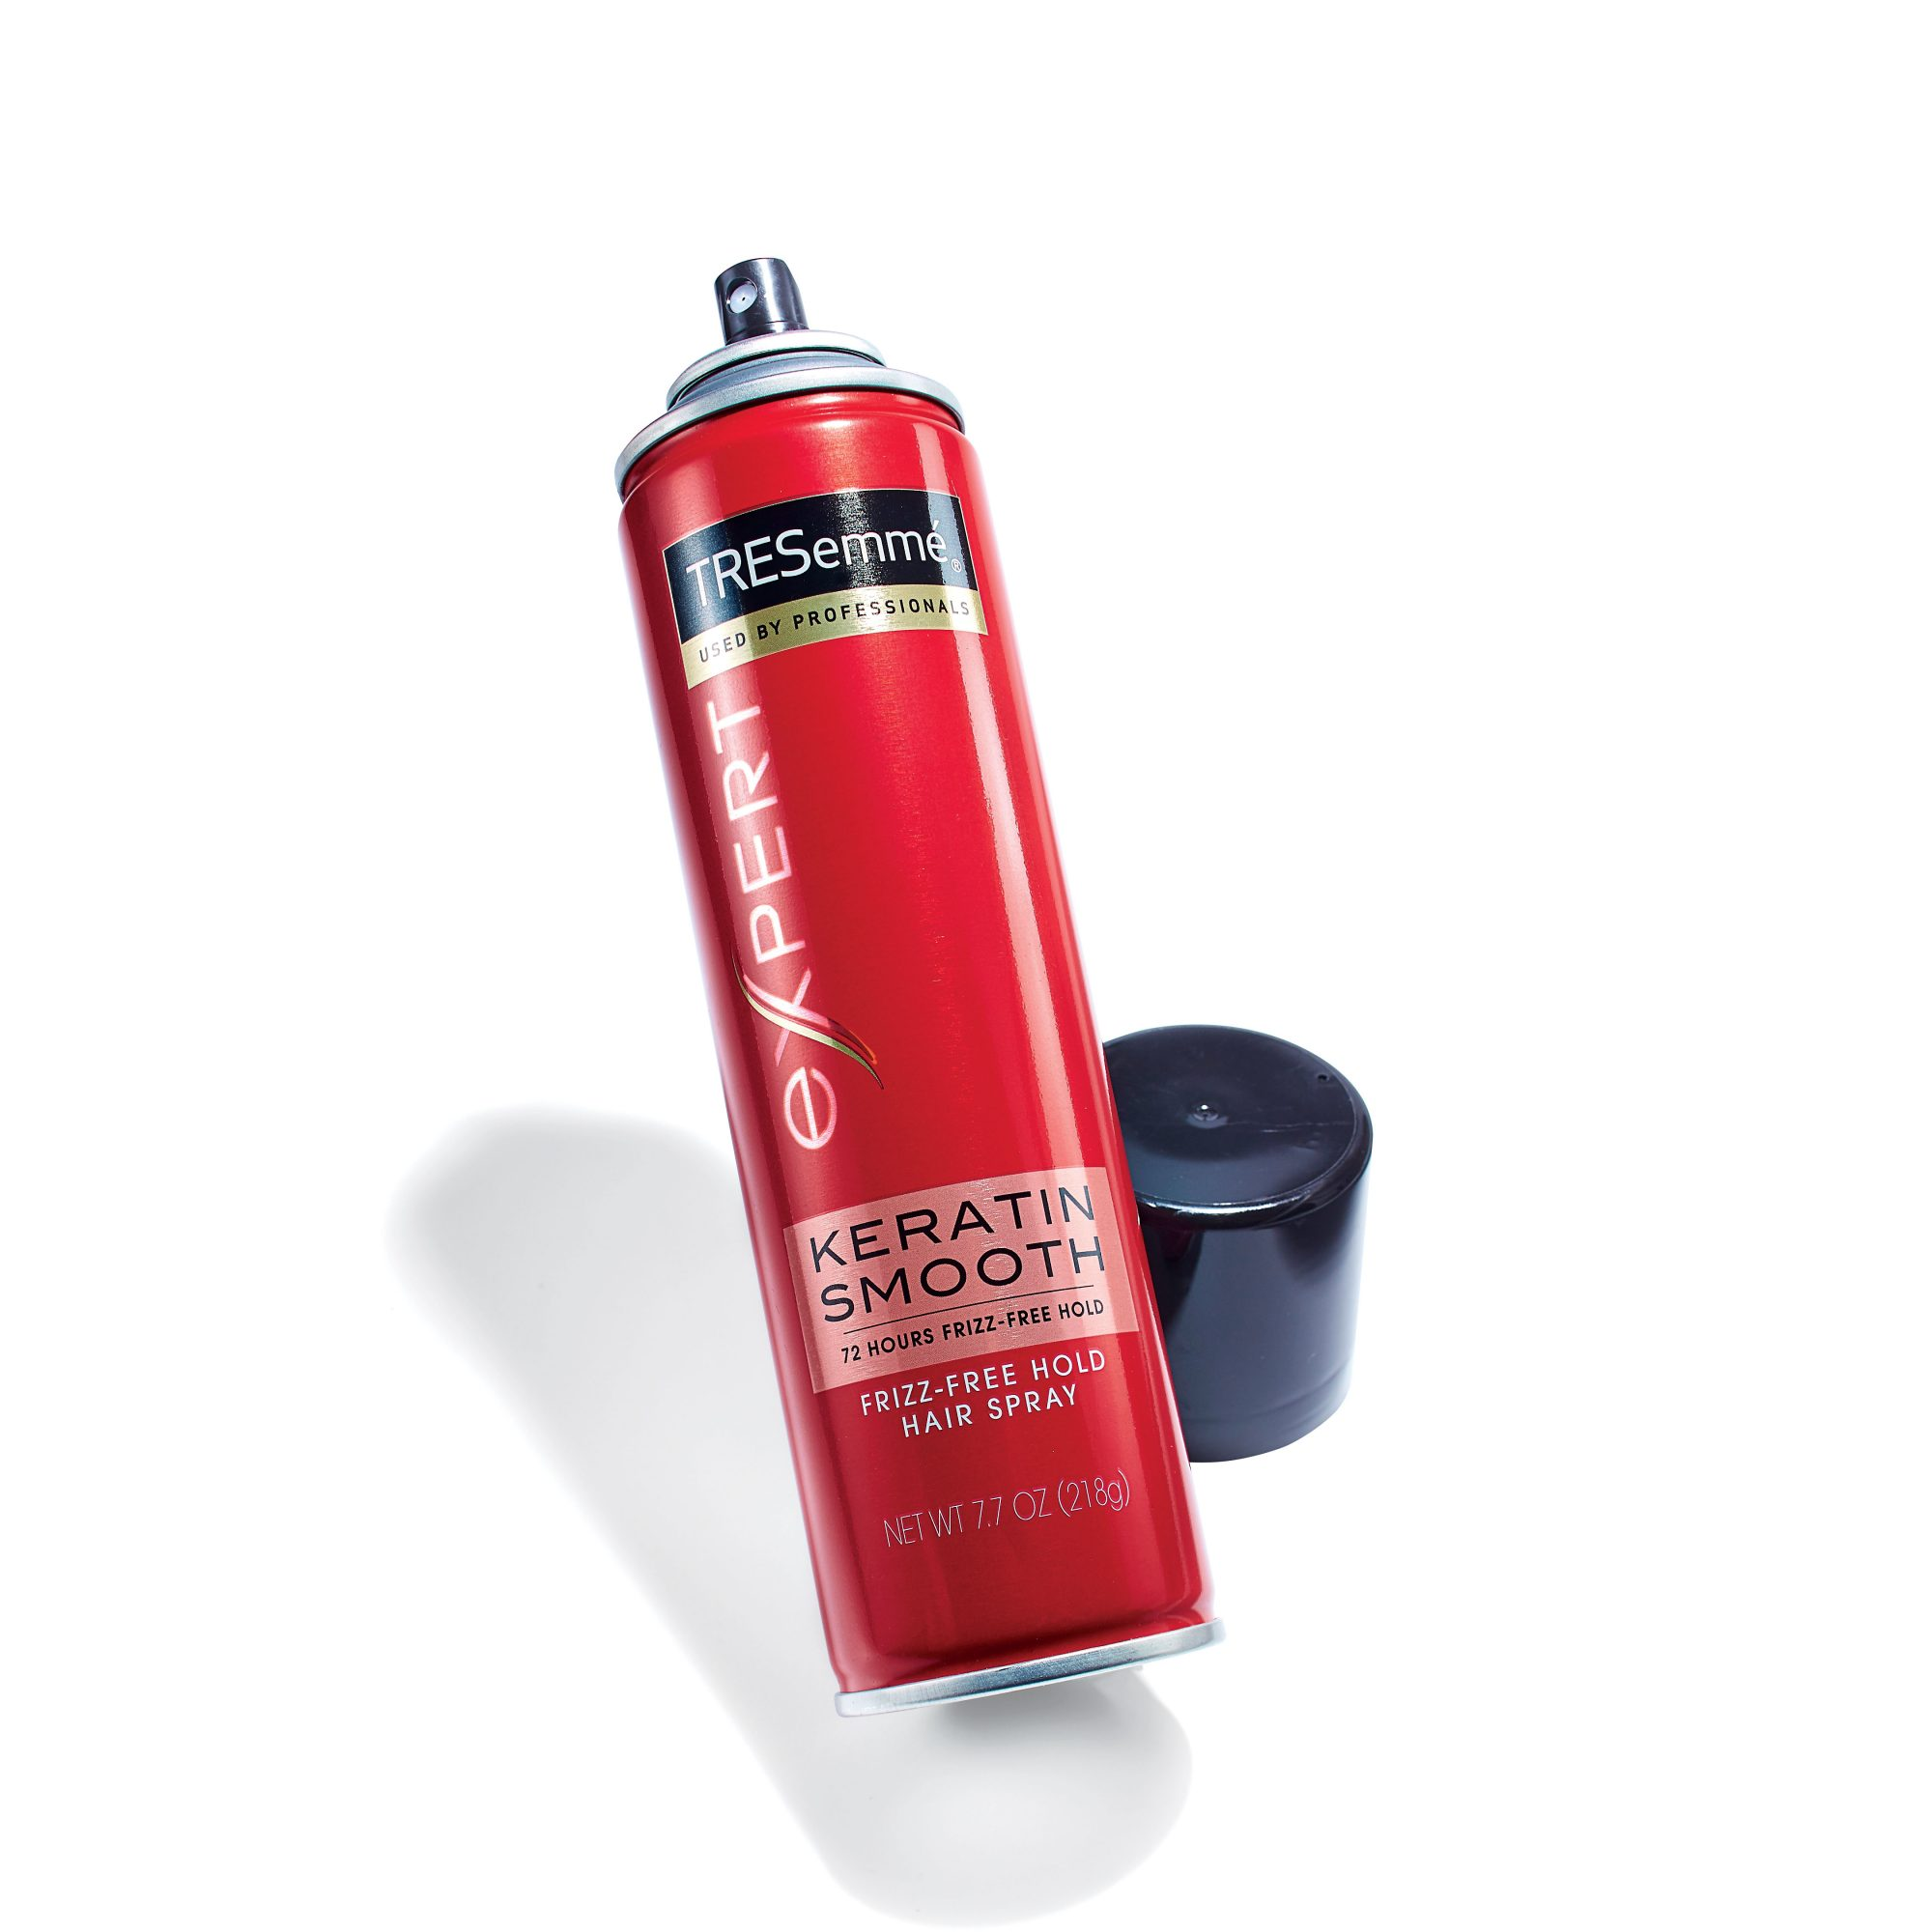 TRESemmé Keratin Smooth Frizz-Free Hold Hair Spray